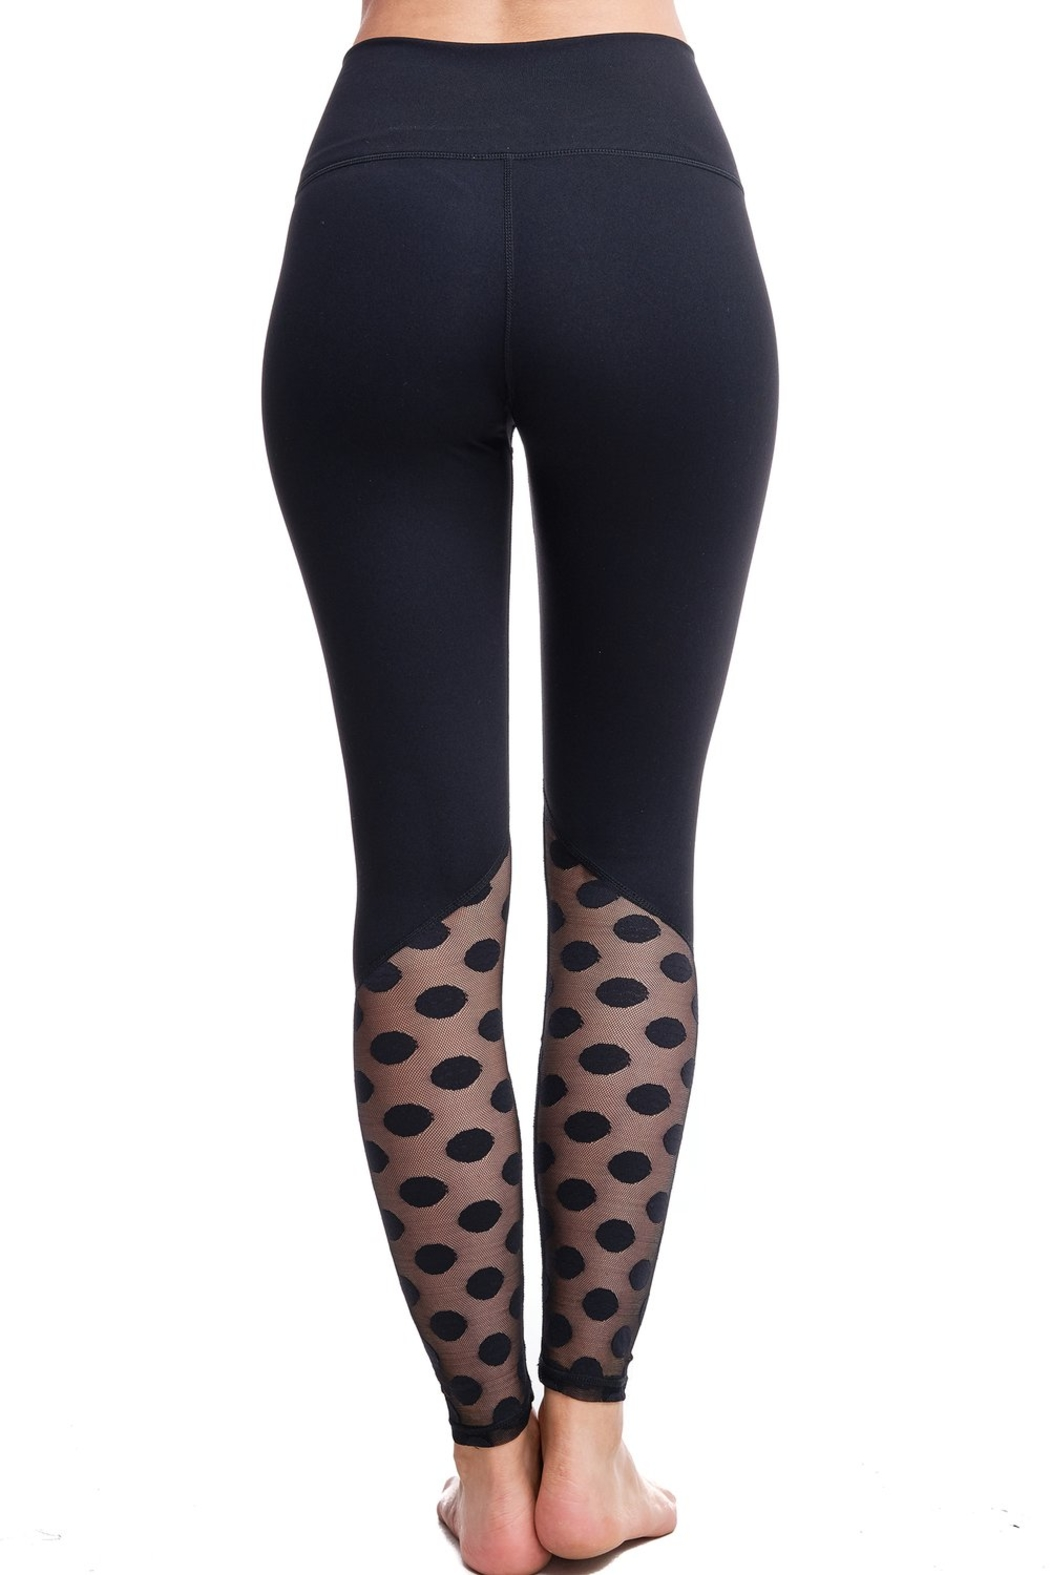 LAsociety Dipped In Dots High Waisted Leggings - Back Cropped Image